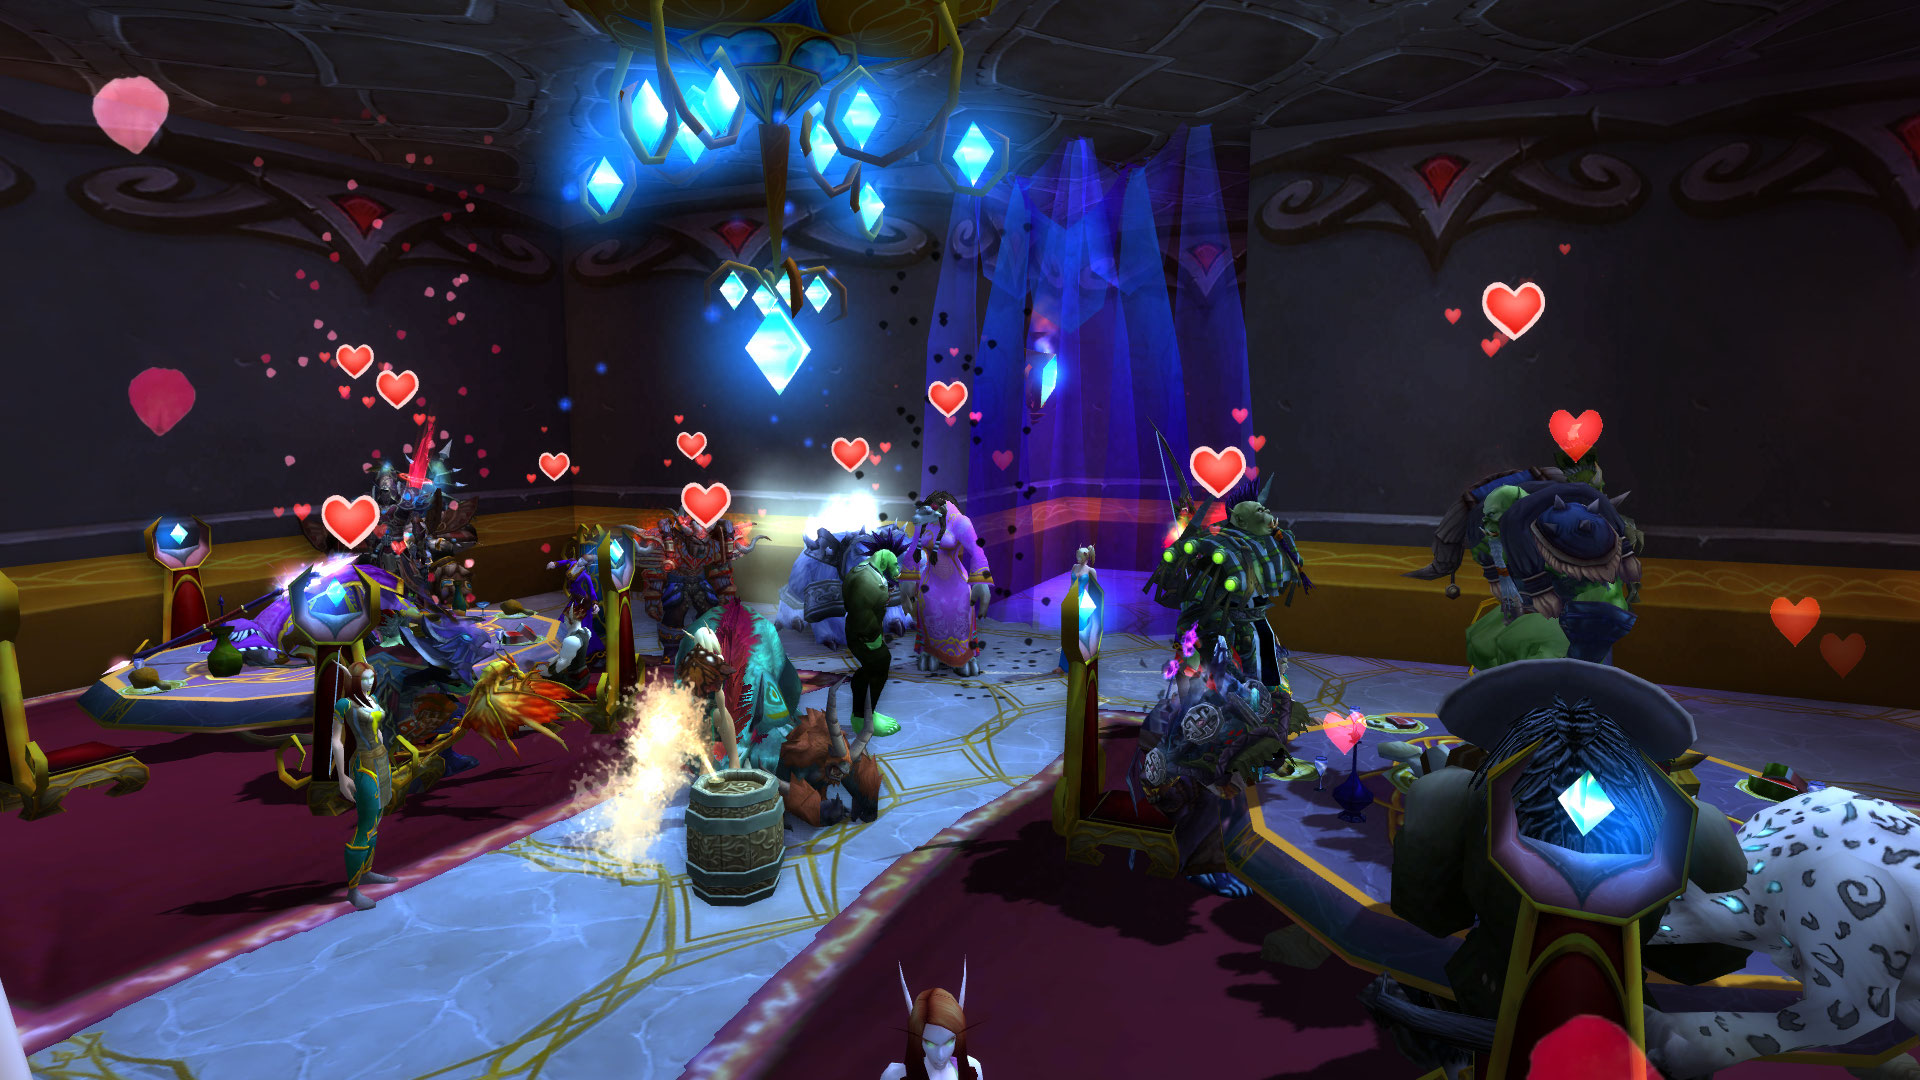 world of warcraft dating sites World of warcraft dating service lfgdating is the #1 world of warcraft dating site, periodwith entire guilds joining the ranks daily, have you raised your world of warcraft dating service lfg flag yet lfgdating is the best.